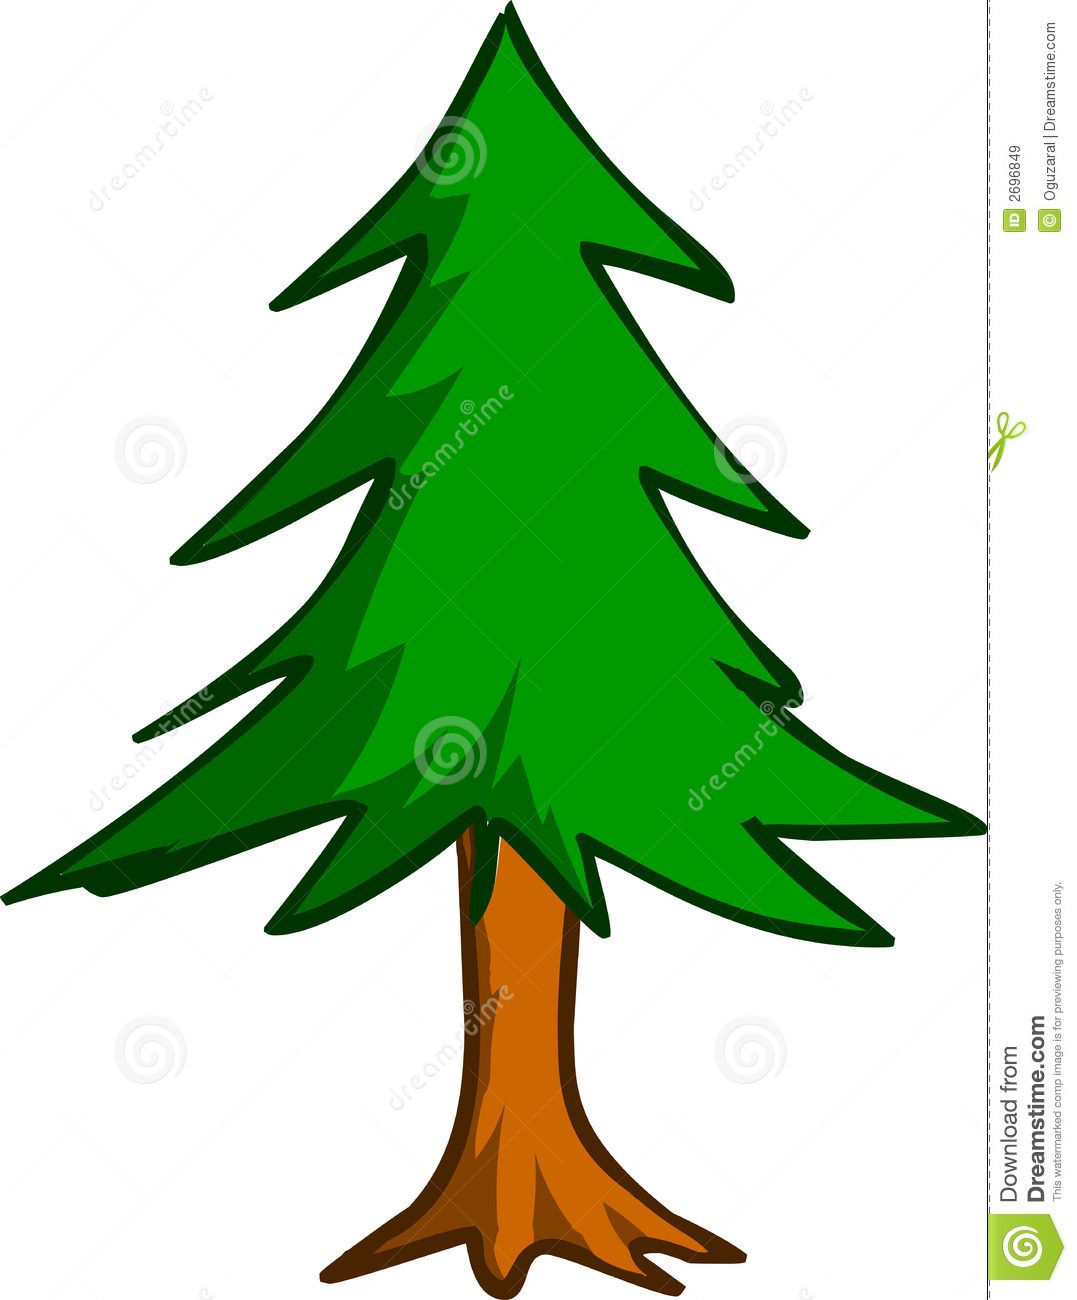 Pine clipart #12